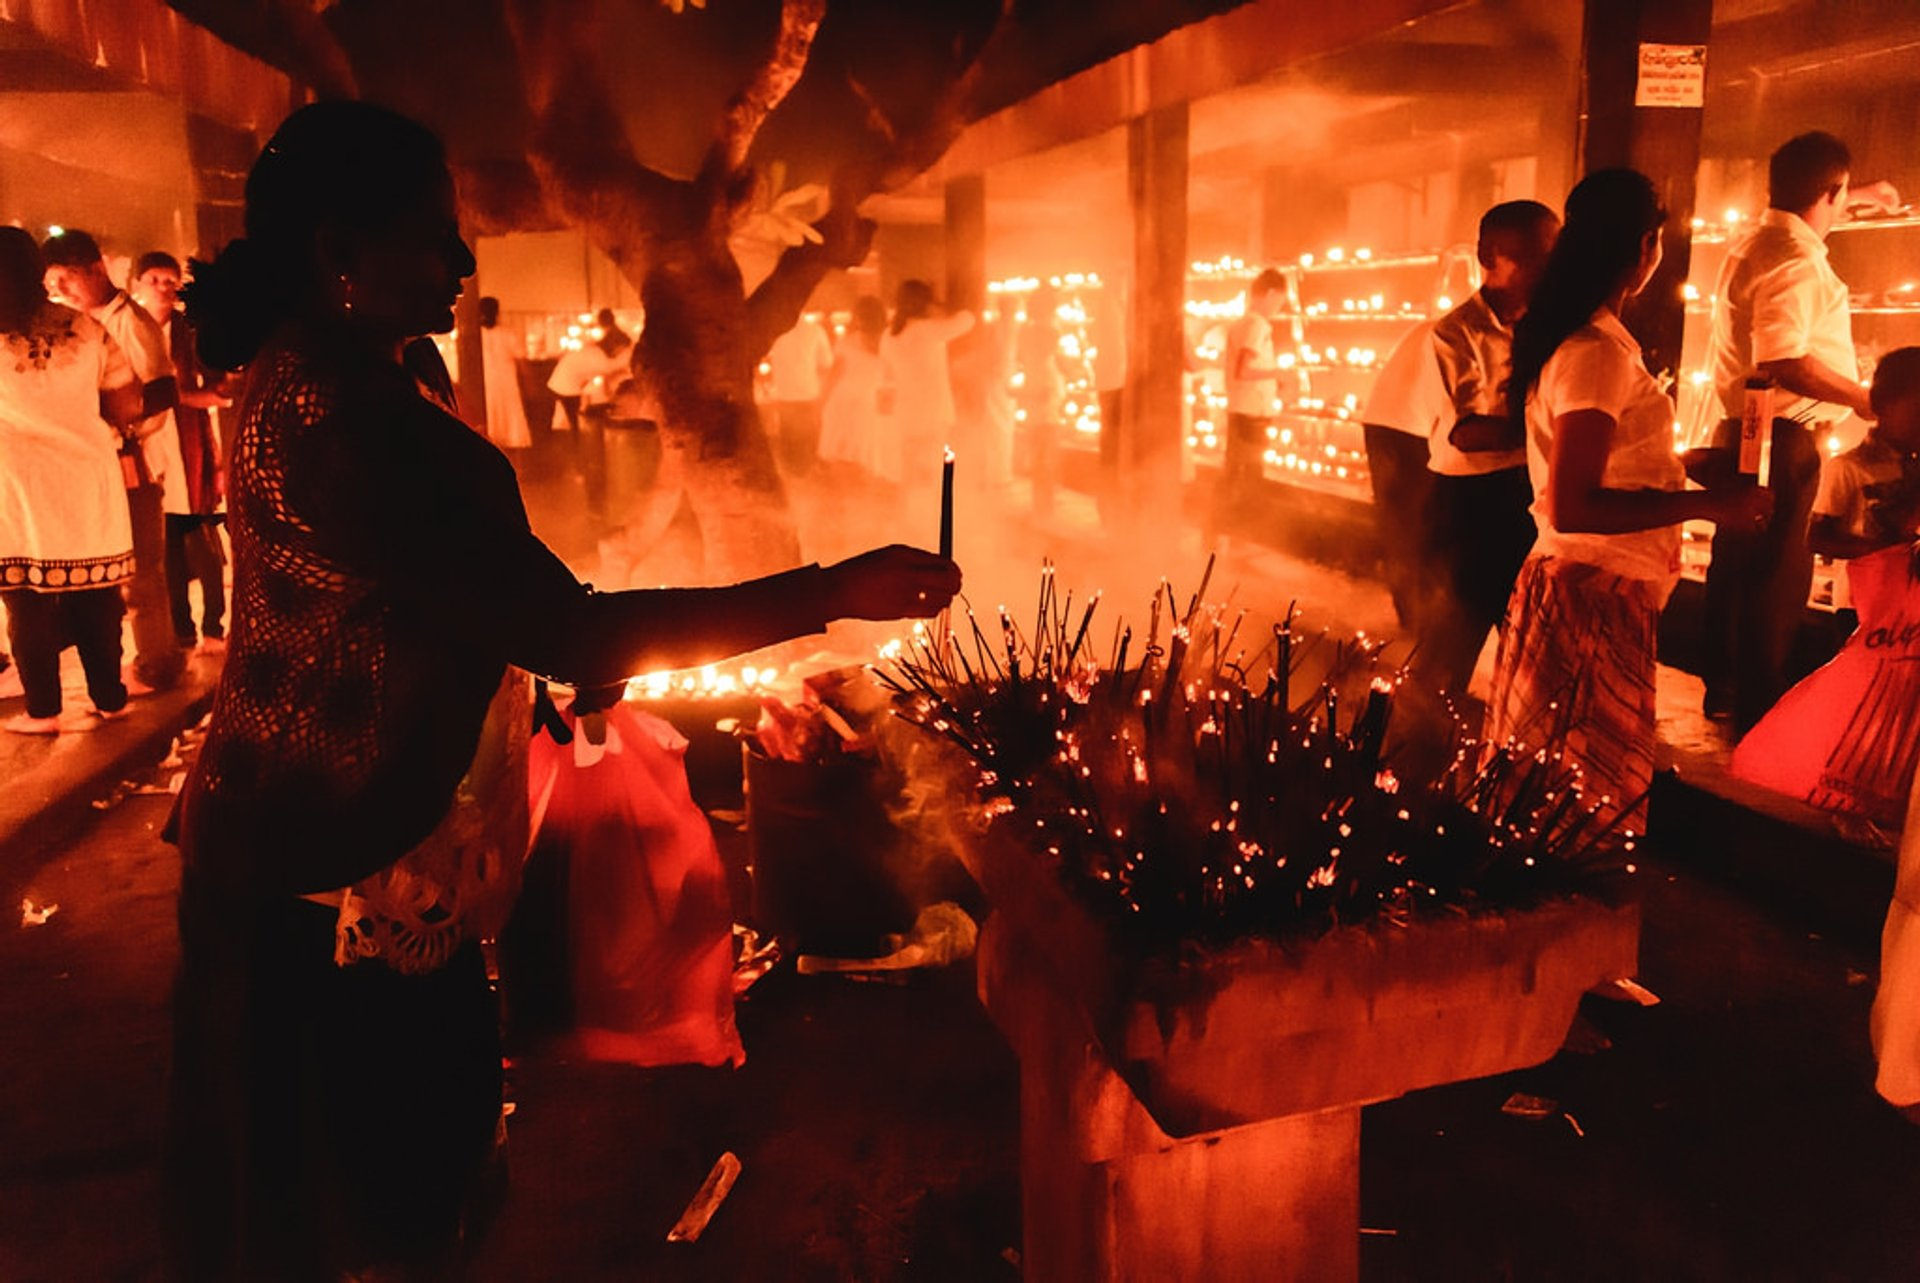 Vesak Festival in Sri Lanka - Best Season 2020